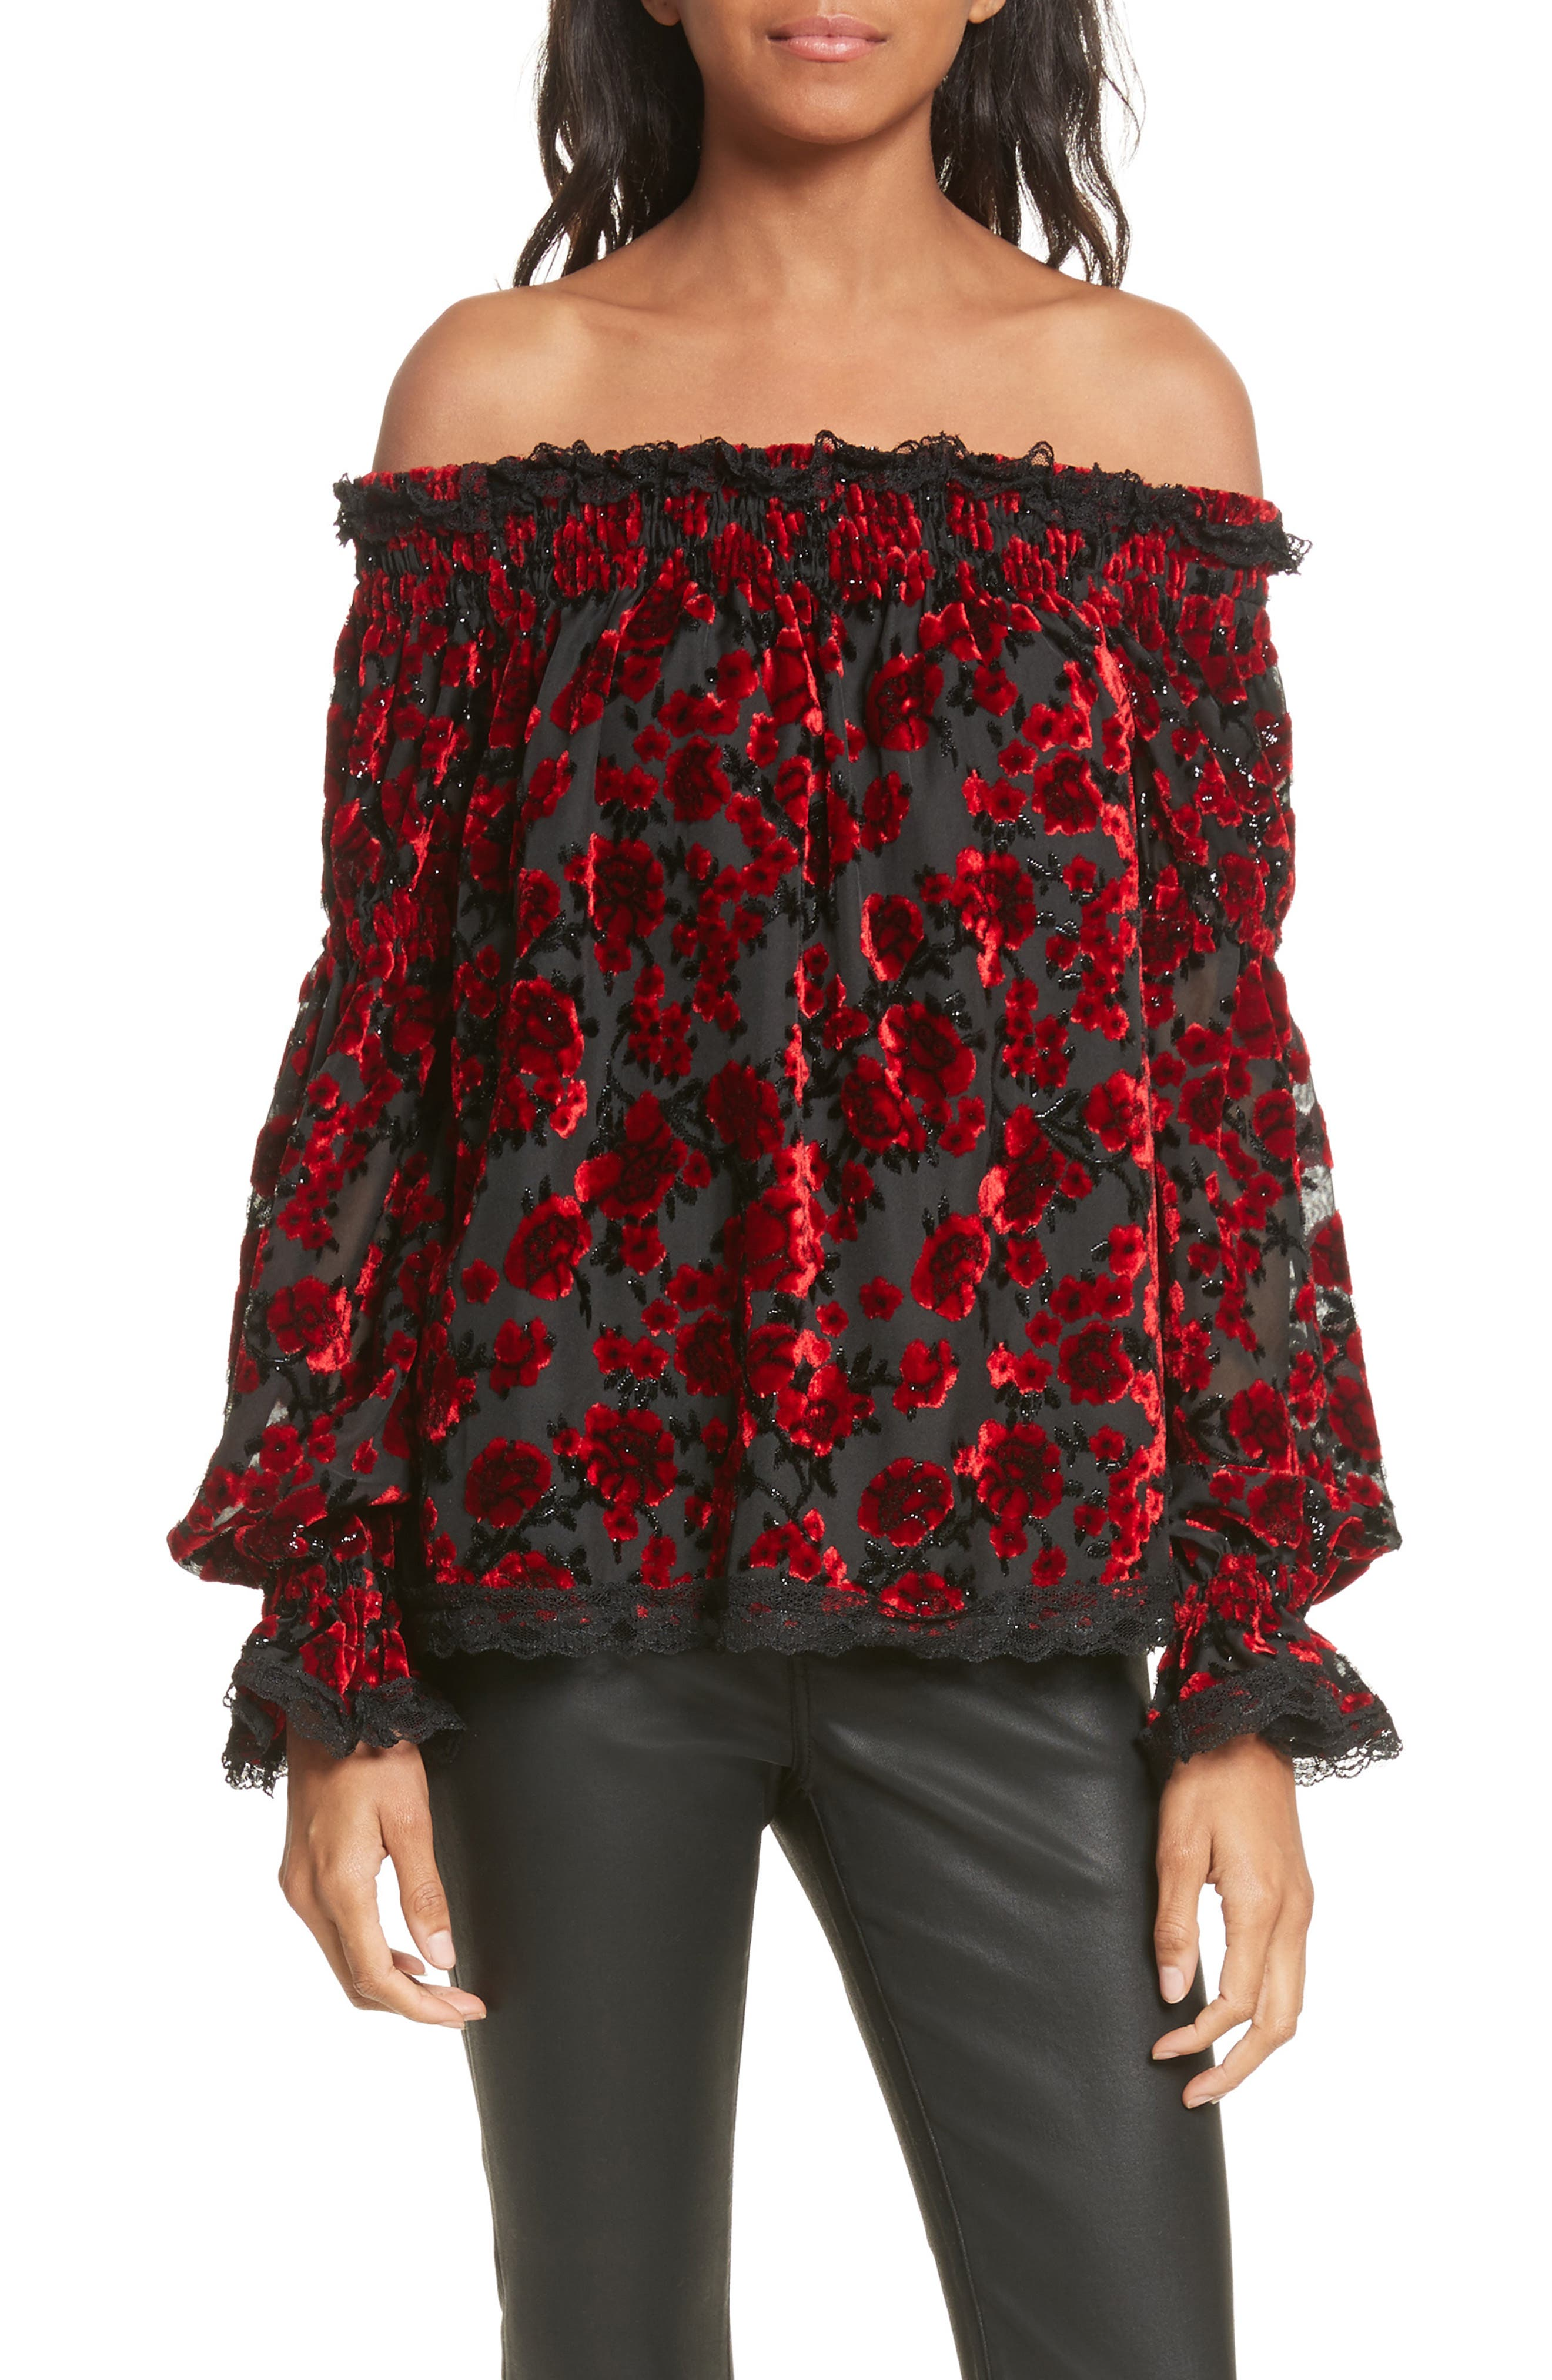 The Kooples Floral Devoré Off the Shoulder Top